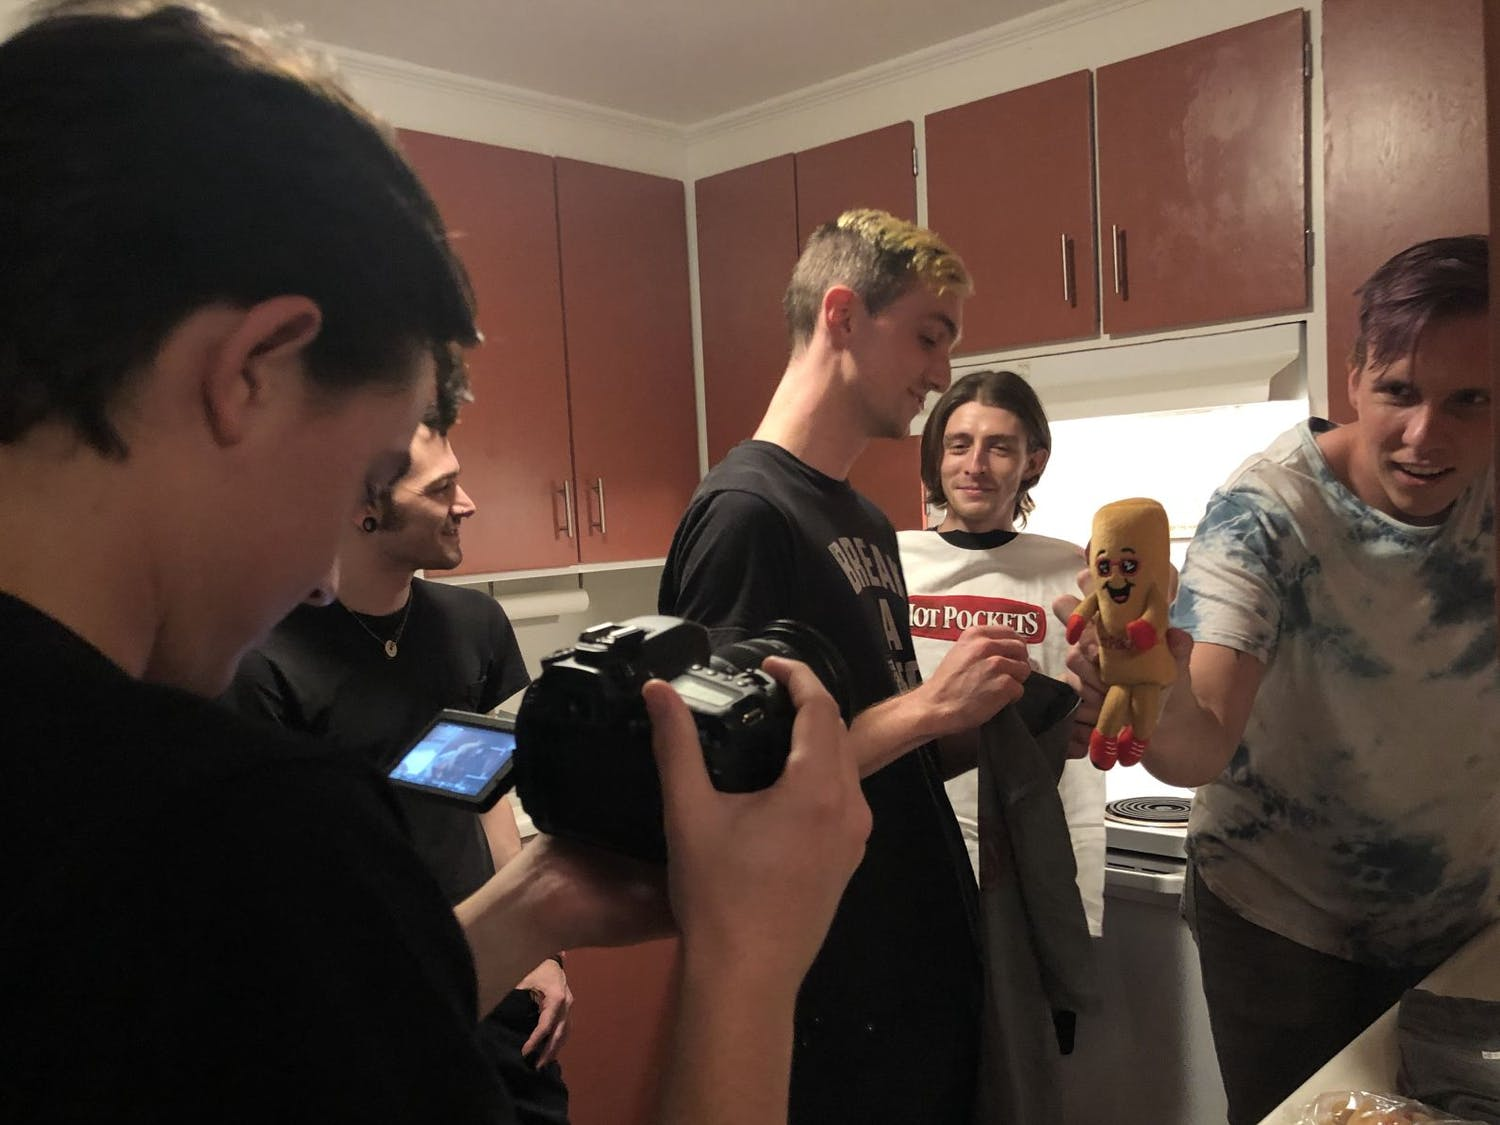 Behind the scenes of Arrows in Action's Hot Pockets unboxing video. The band's manager, Jacob McKay, films bassist Tony Farah, guitarist Matt Fowler, lead vocalist Victor Viramontes-Pattison and drummer Jesse Frimmel (from left to right).